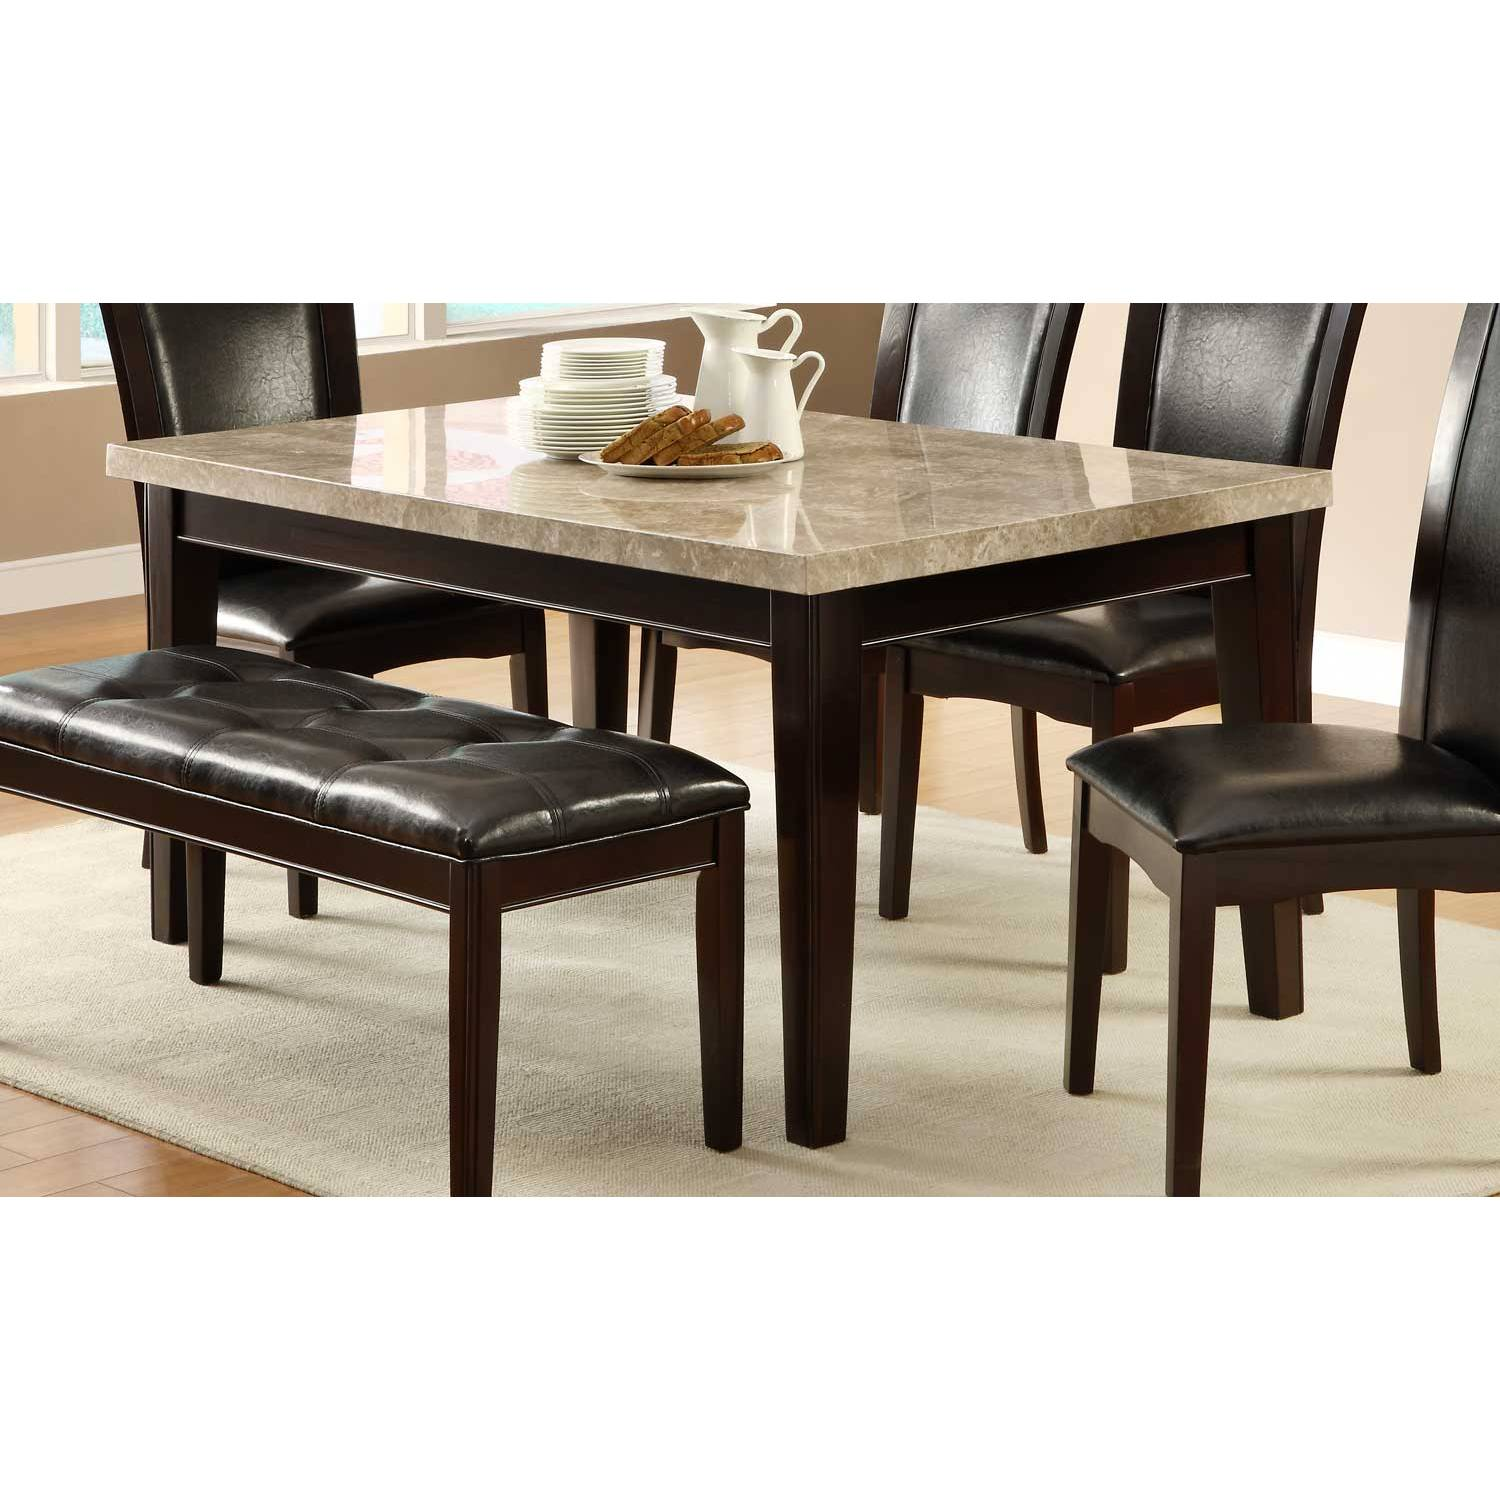 Furniture Outlet, Clearance, Sale, reduced, price, cheap, close outs, closeouts, short sale, liqidation.